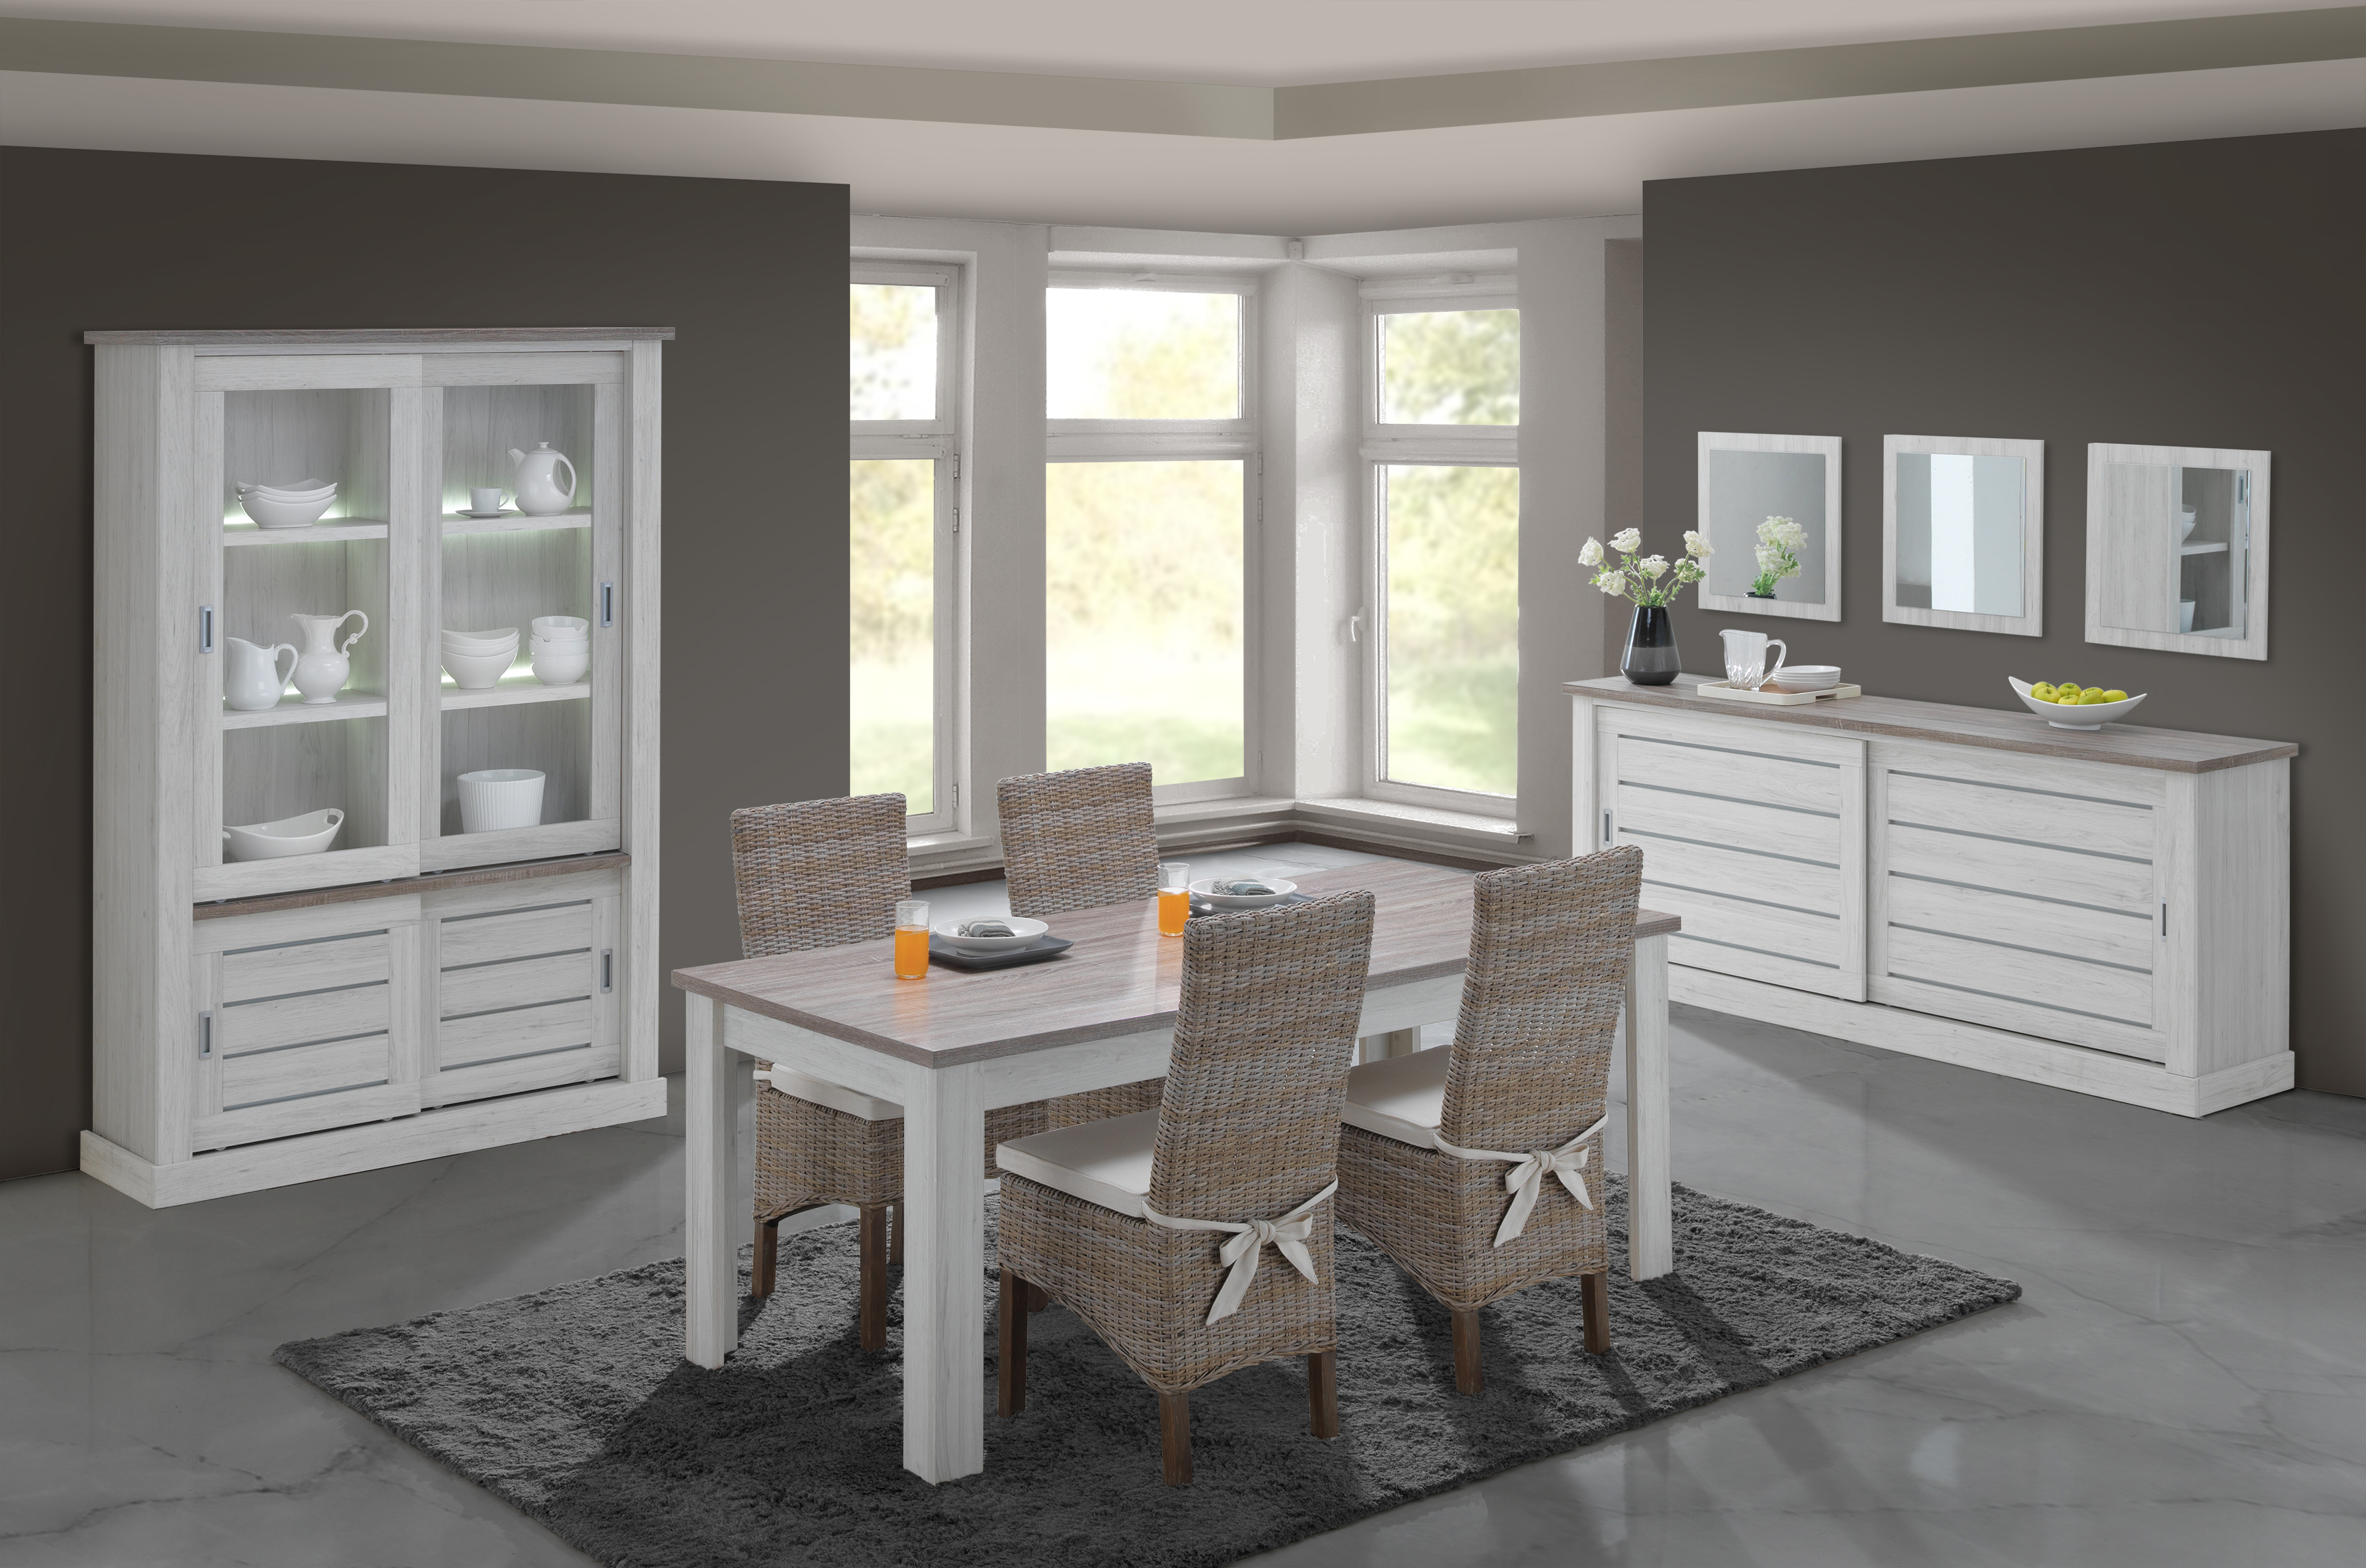 salle a manger eva. Black Bedroom Furniture Sets. Home Design Ideas